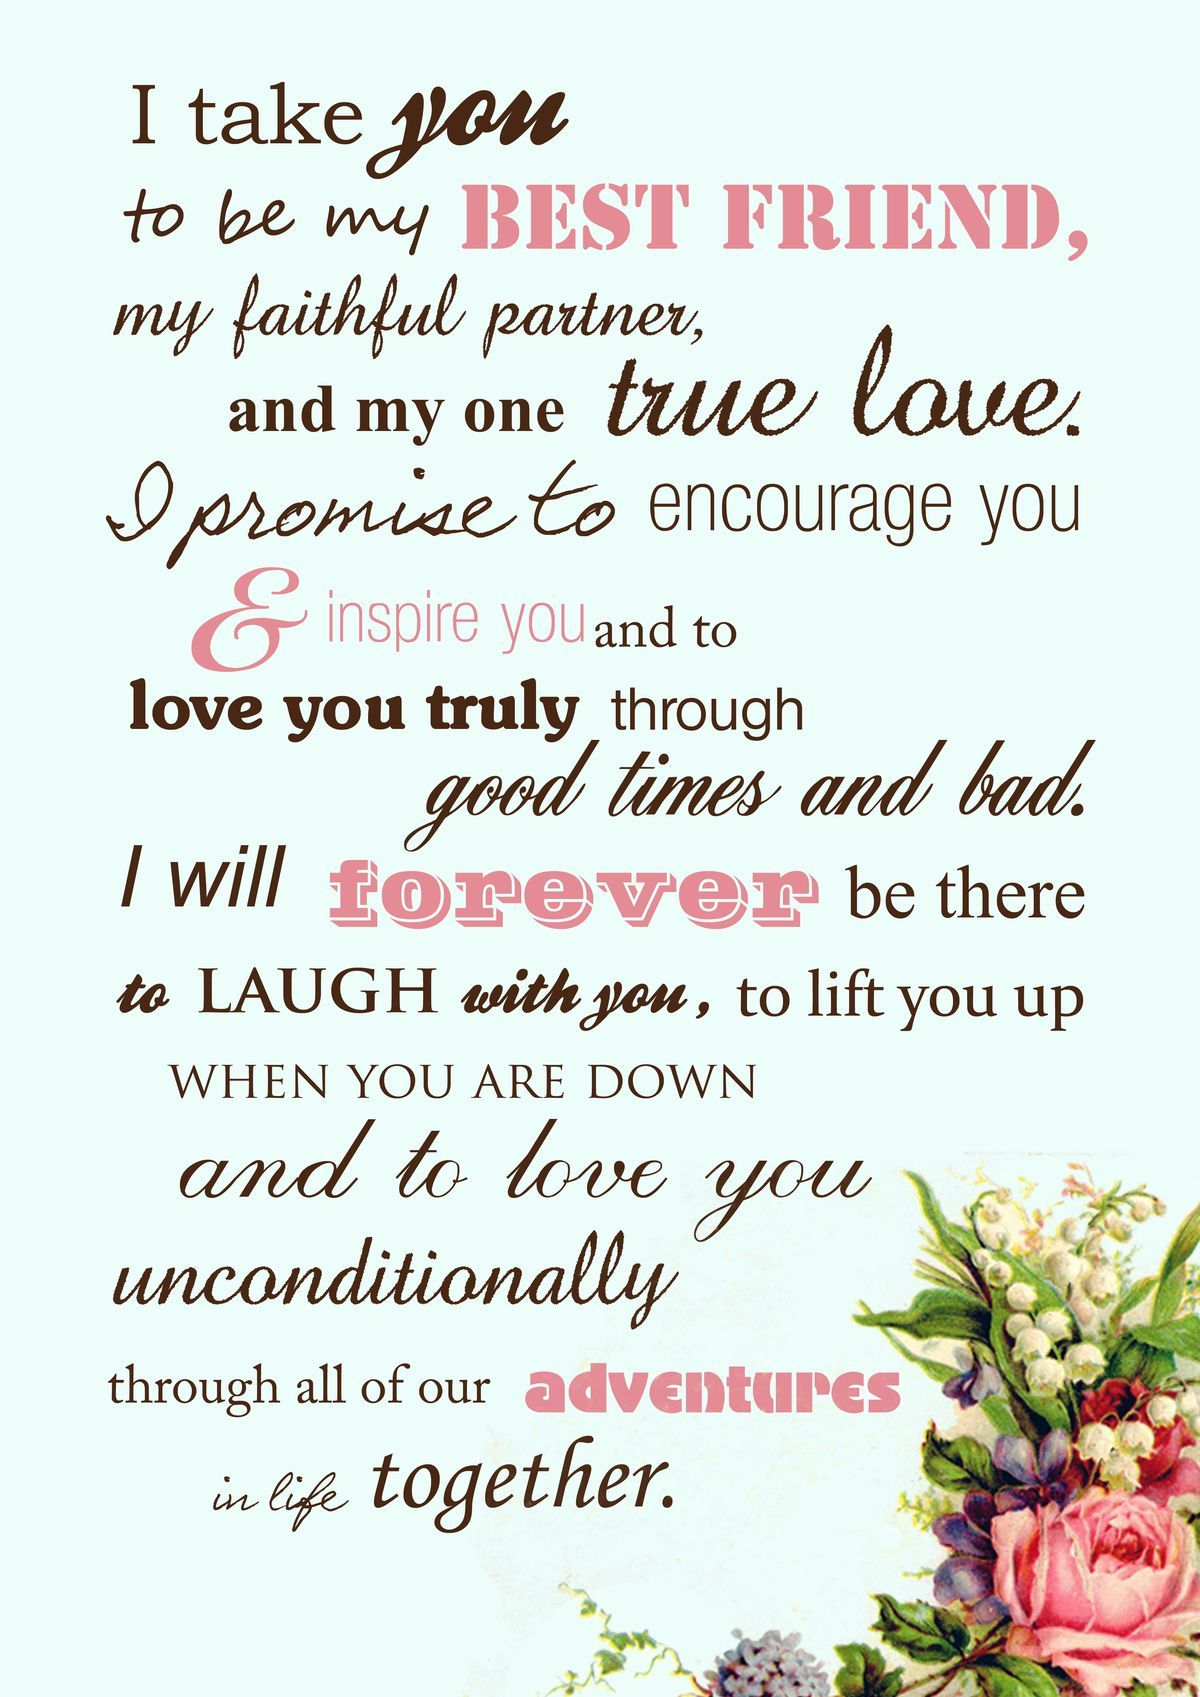 traditional wedding vows best photos Funny wedding vows